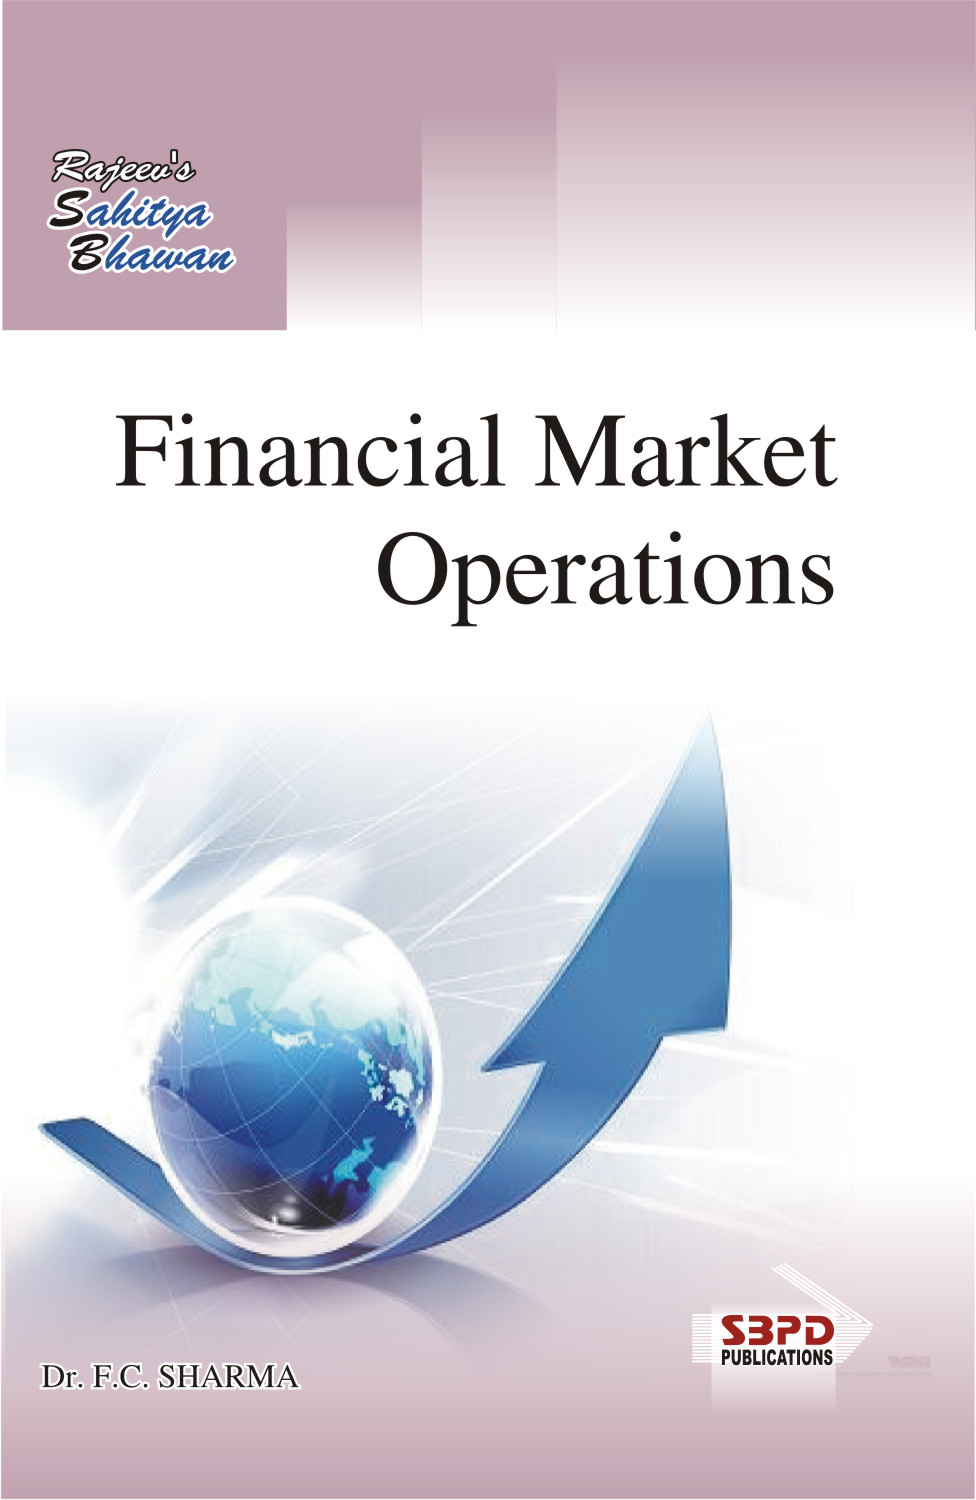 Financial Market Operations